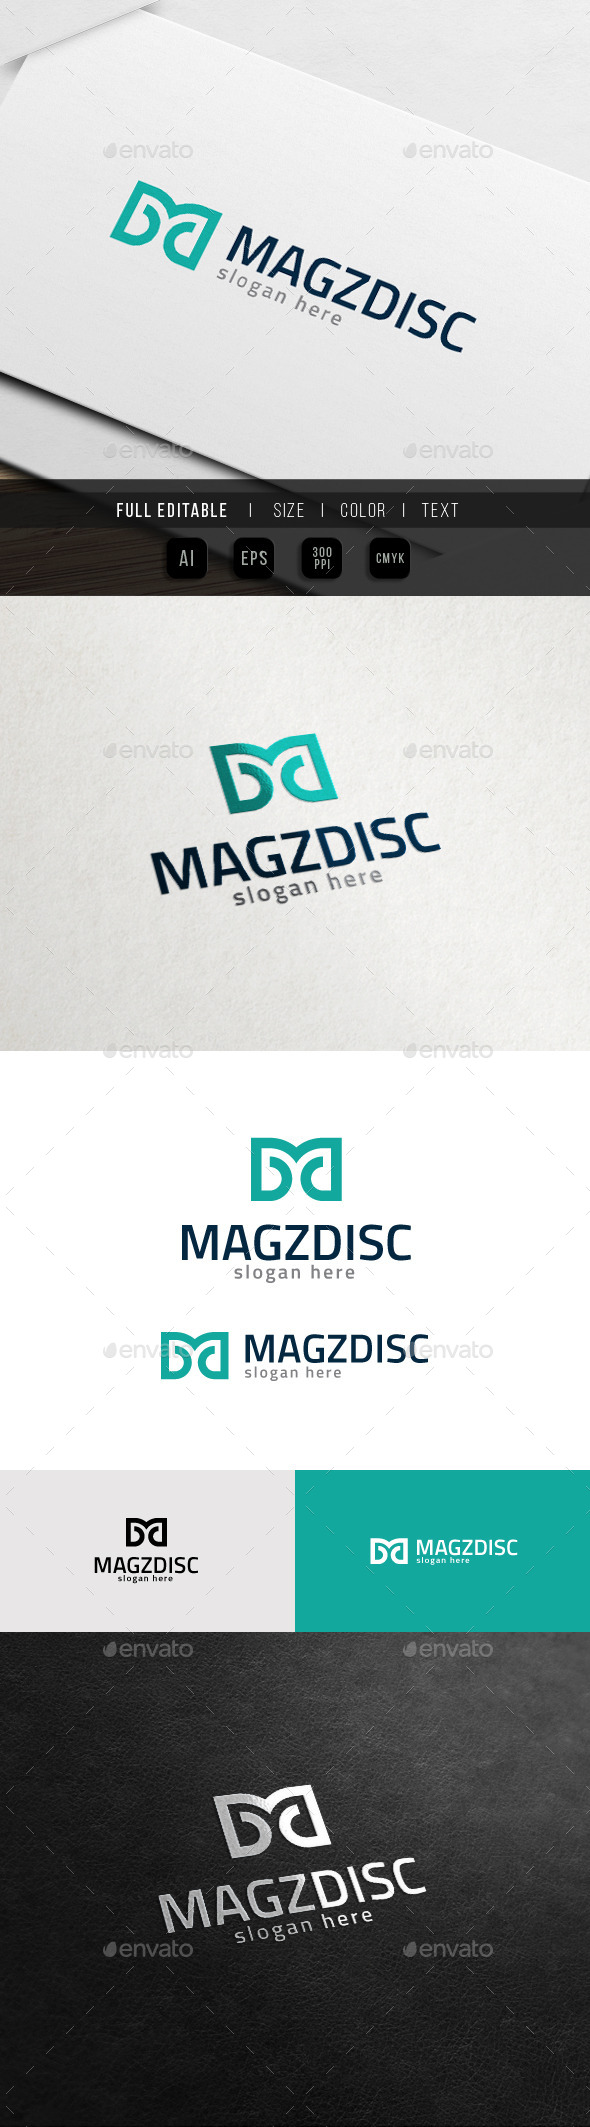 GraphicRiver Master Design Apparel Brand M MD Logo 11548239